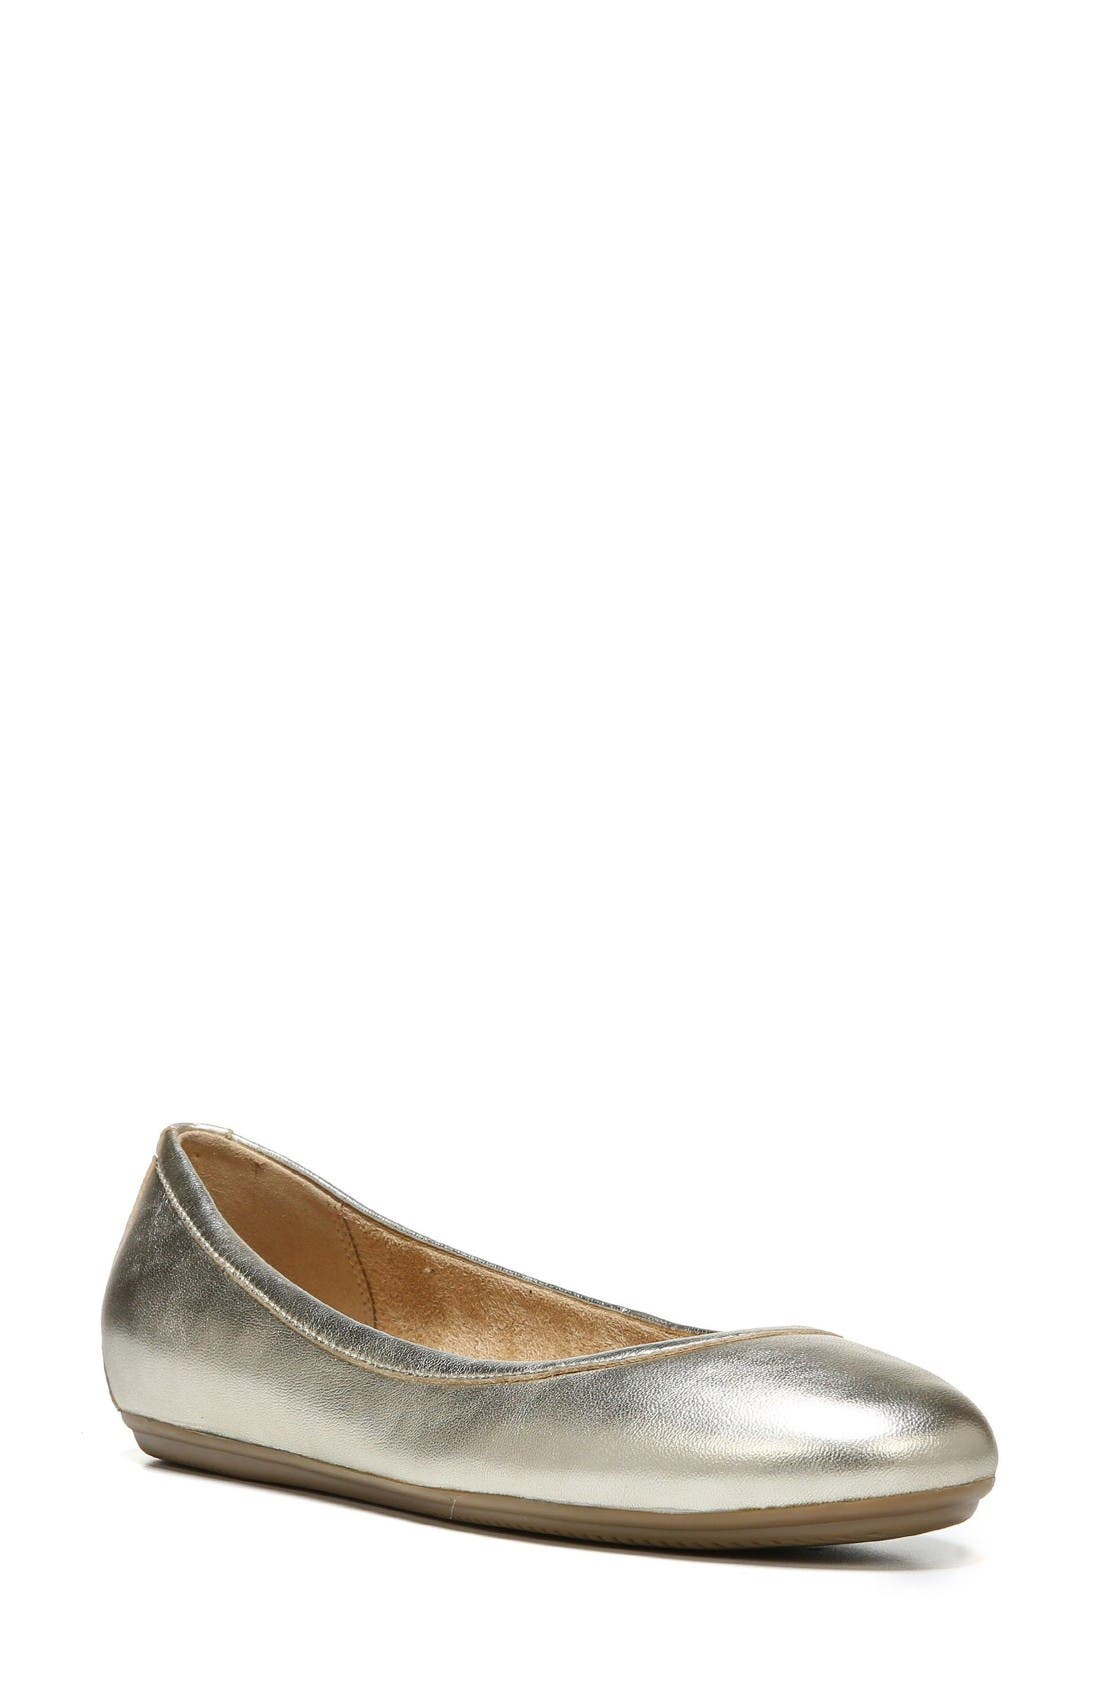 Alternate Image 1 Selected - Naturalizer Brittany Ballet Flat (Women)